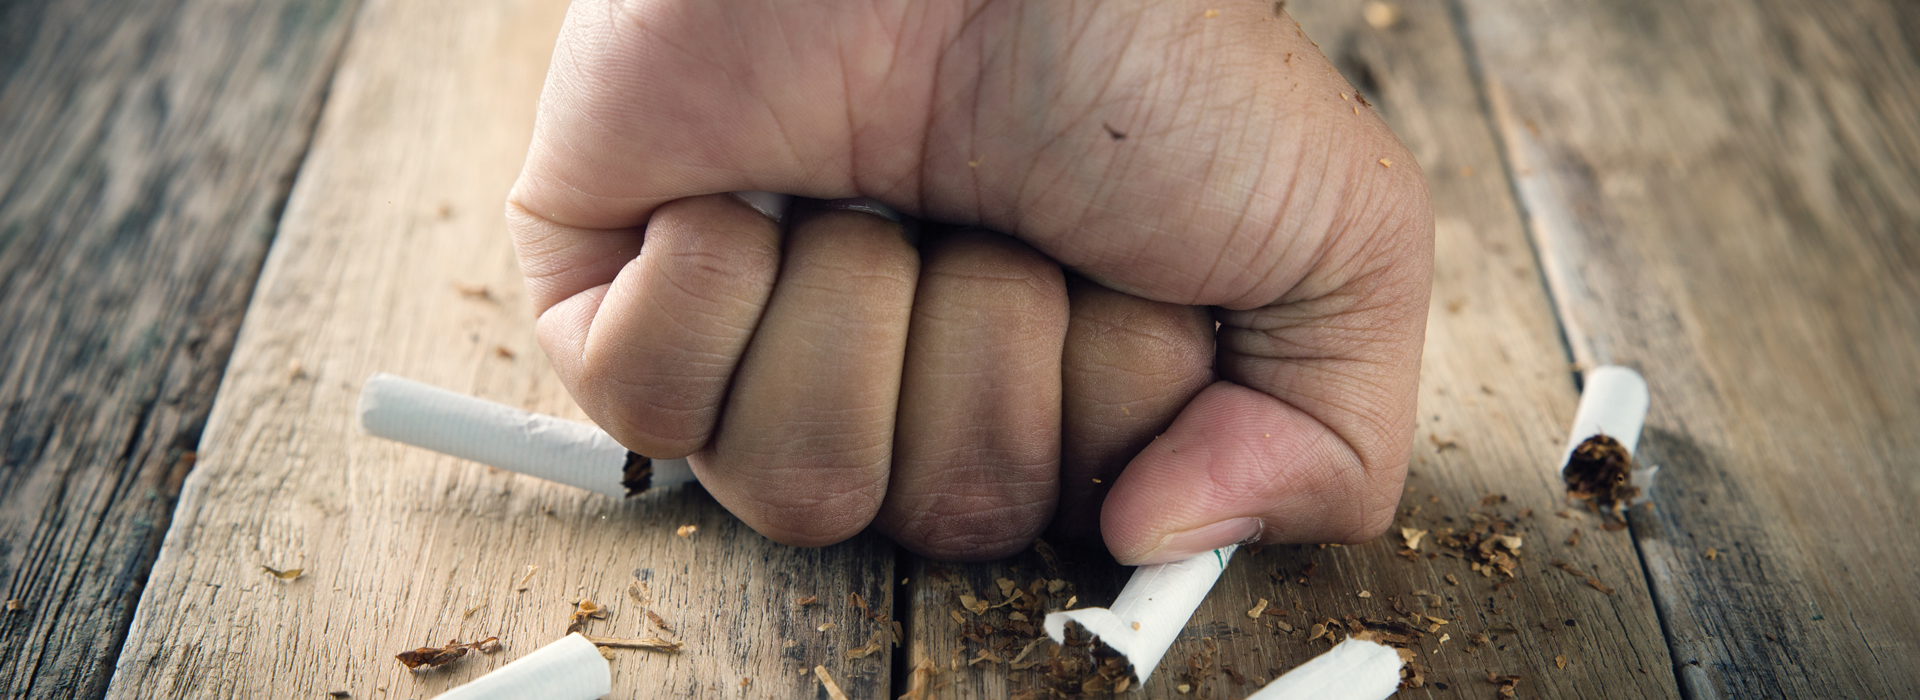 person smashing a cigarette with their fist